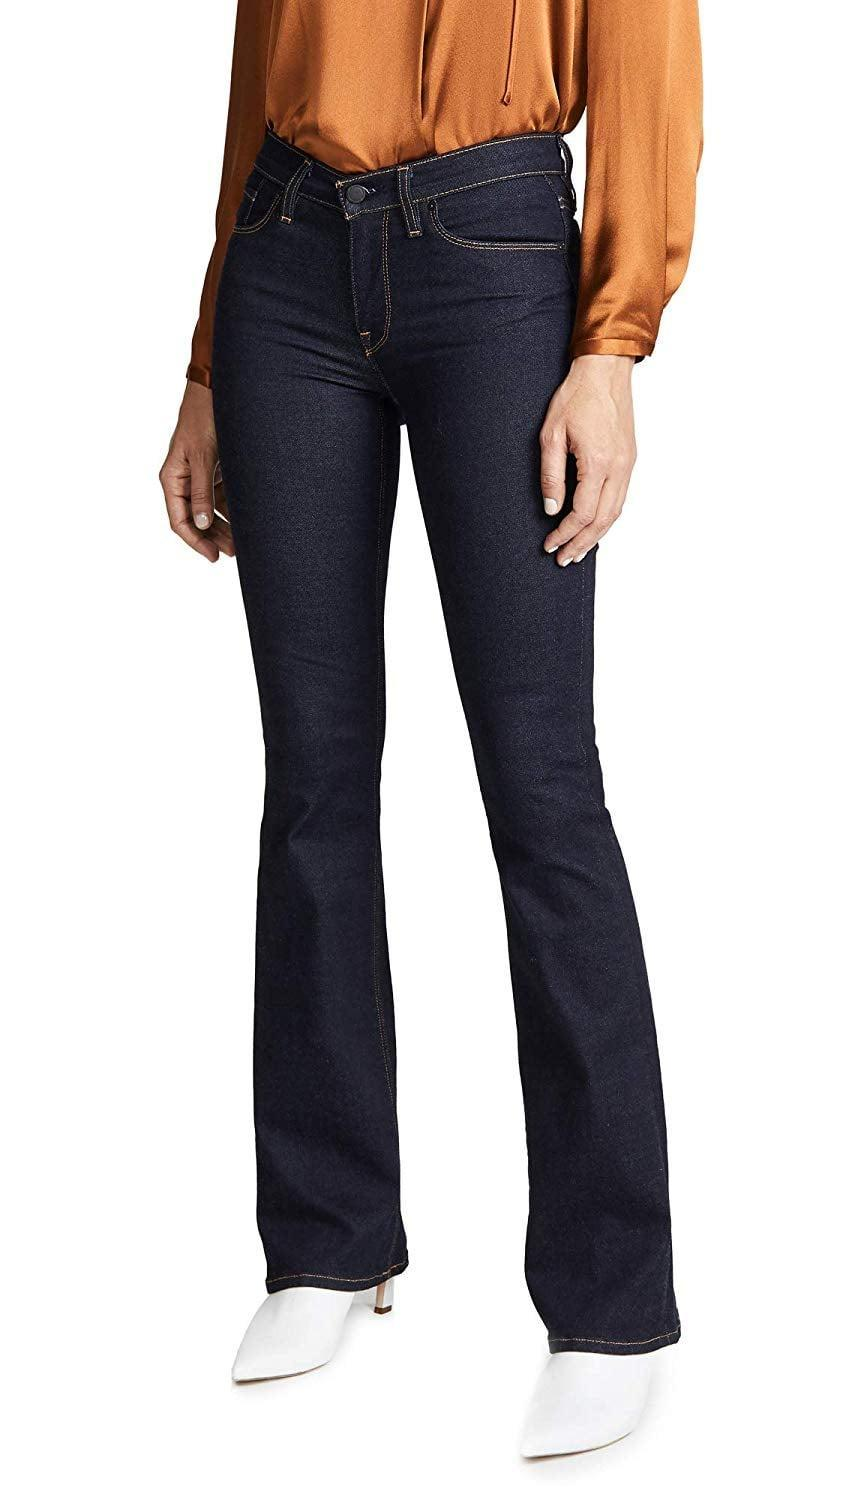 <p>If you're over your skinnies, try these <span>Hudson Jeans Drew Midrise Bootcut Jeans </span> ($89 - $205).</p>